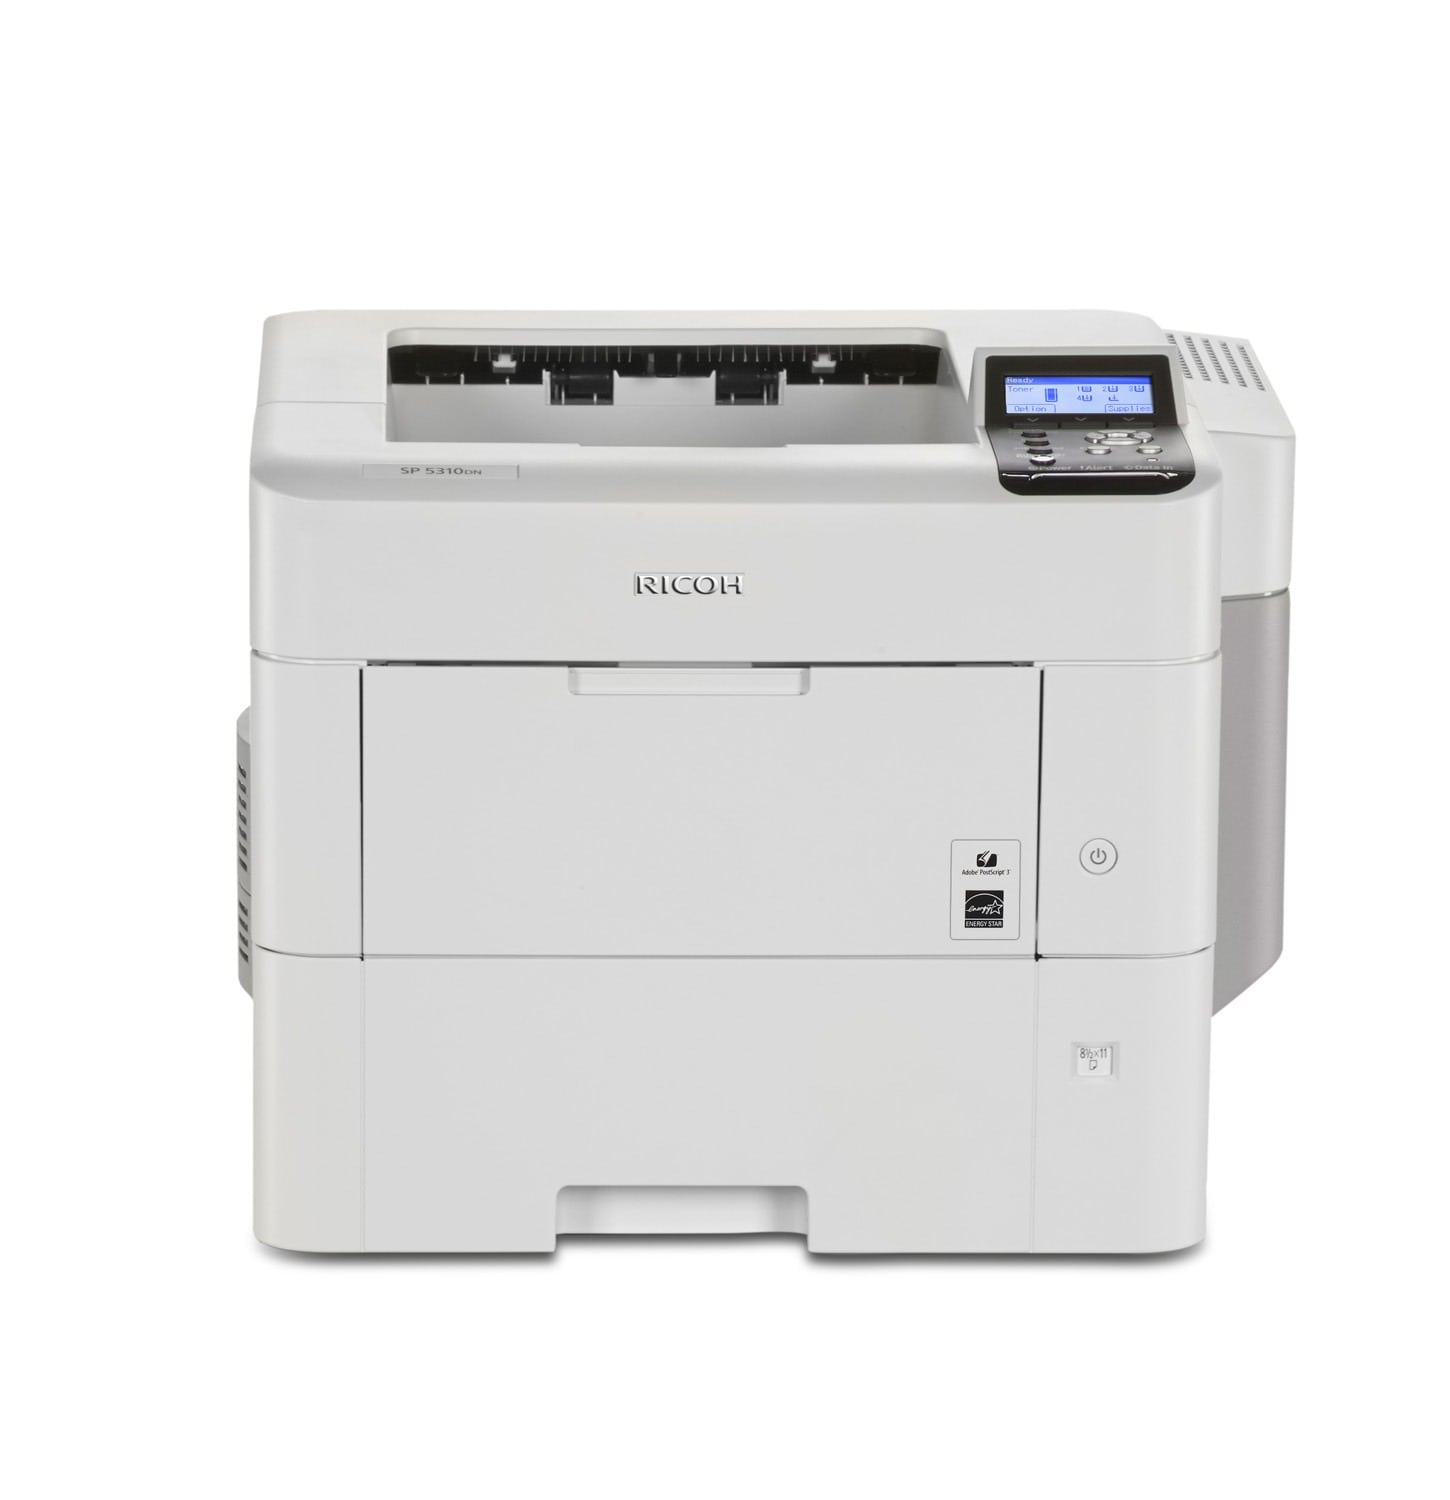 Ricoh SP 5300DN Printer Driver